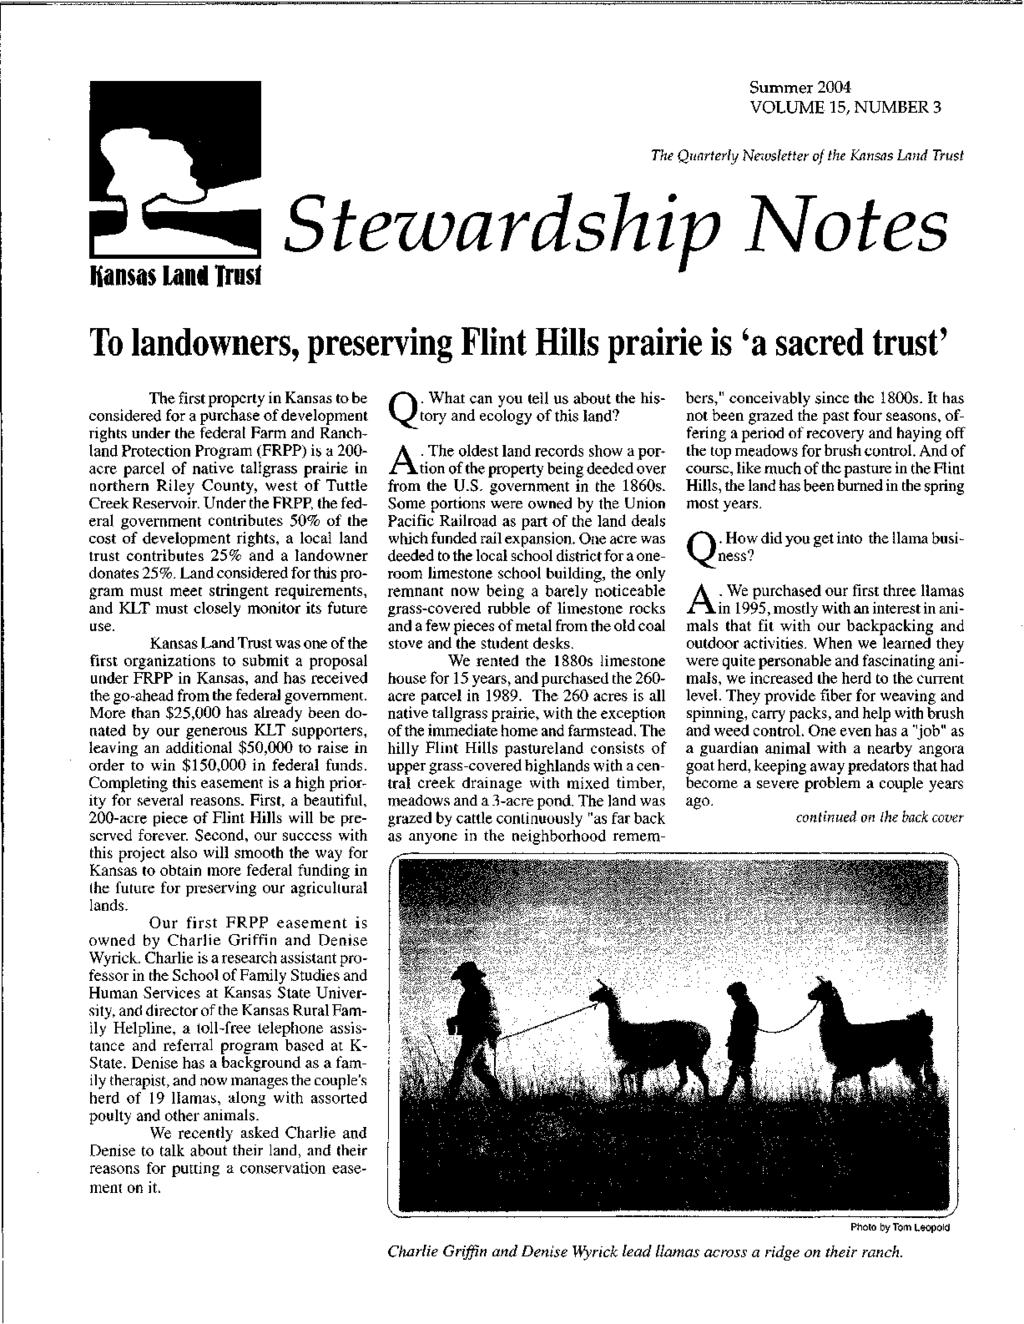 Summer 2004 VOLUME 15, NUMBER 3 The Quarterly Newsletter of the Kansas Land Trust I{ansas land Trusf Stewardship otes To landowners, preserving Flint Hills prairie is 'a sacred trust' The first